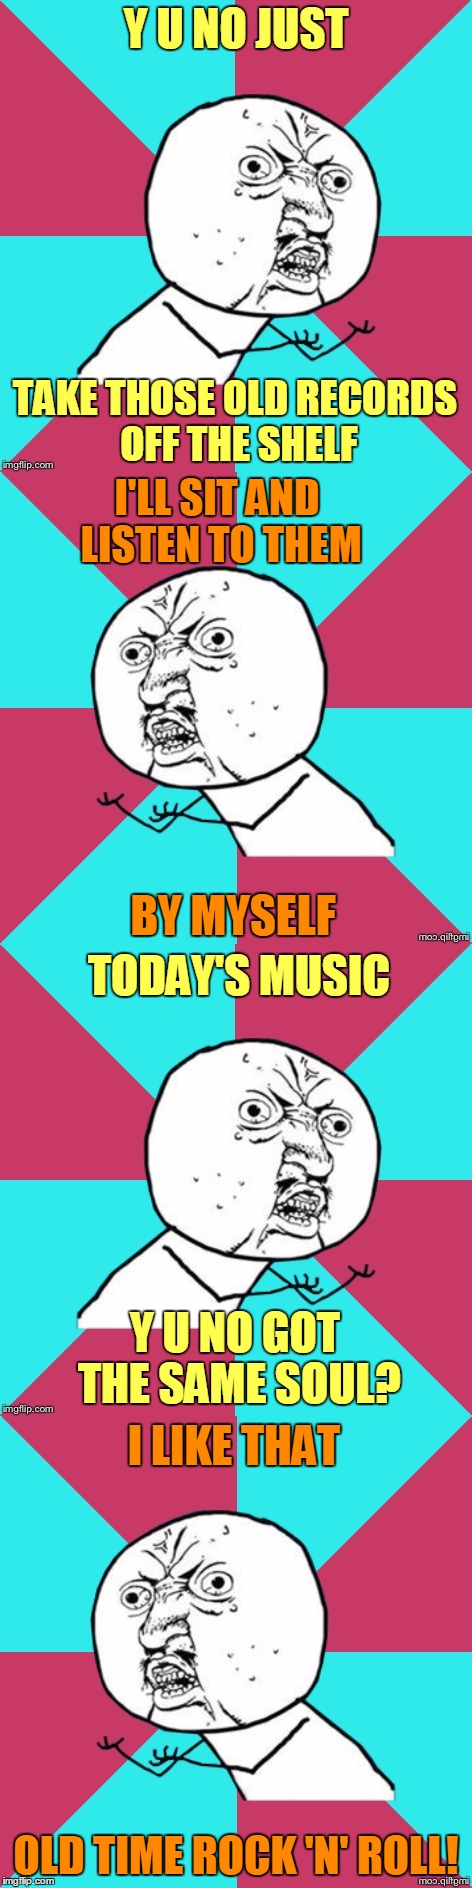 Y U No Reminisce About the Days of Old? :) | Y U NO JUST OLD TIME ROCK 'N' ROLL! TAKE THOSE OLD RECORDS OFF THE SHELF I'LL SIT AND LISTEN TO THEM BY MYSELF TODAY'S MUSIC Y U NO GOT THE  | image tagged in memes,y u no,y u no music,y u no rhythm guy,bob seeger,old time rock and roll | made w/ Imgflip meme maker